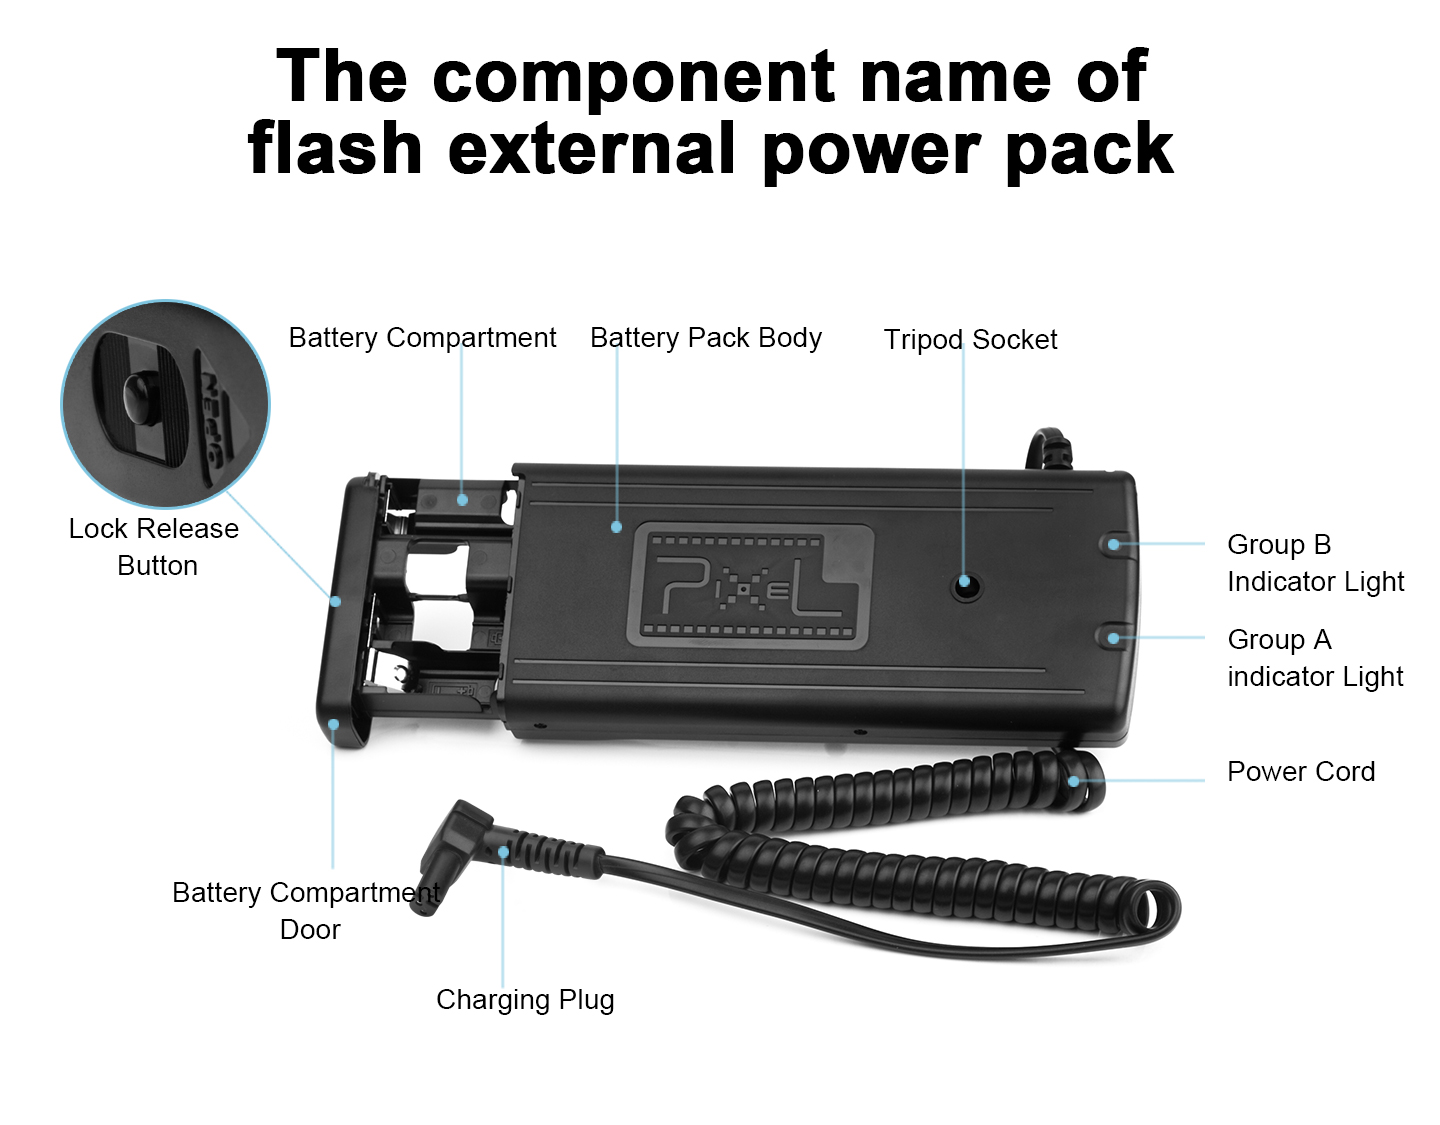 The component name of flash external power pack